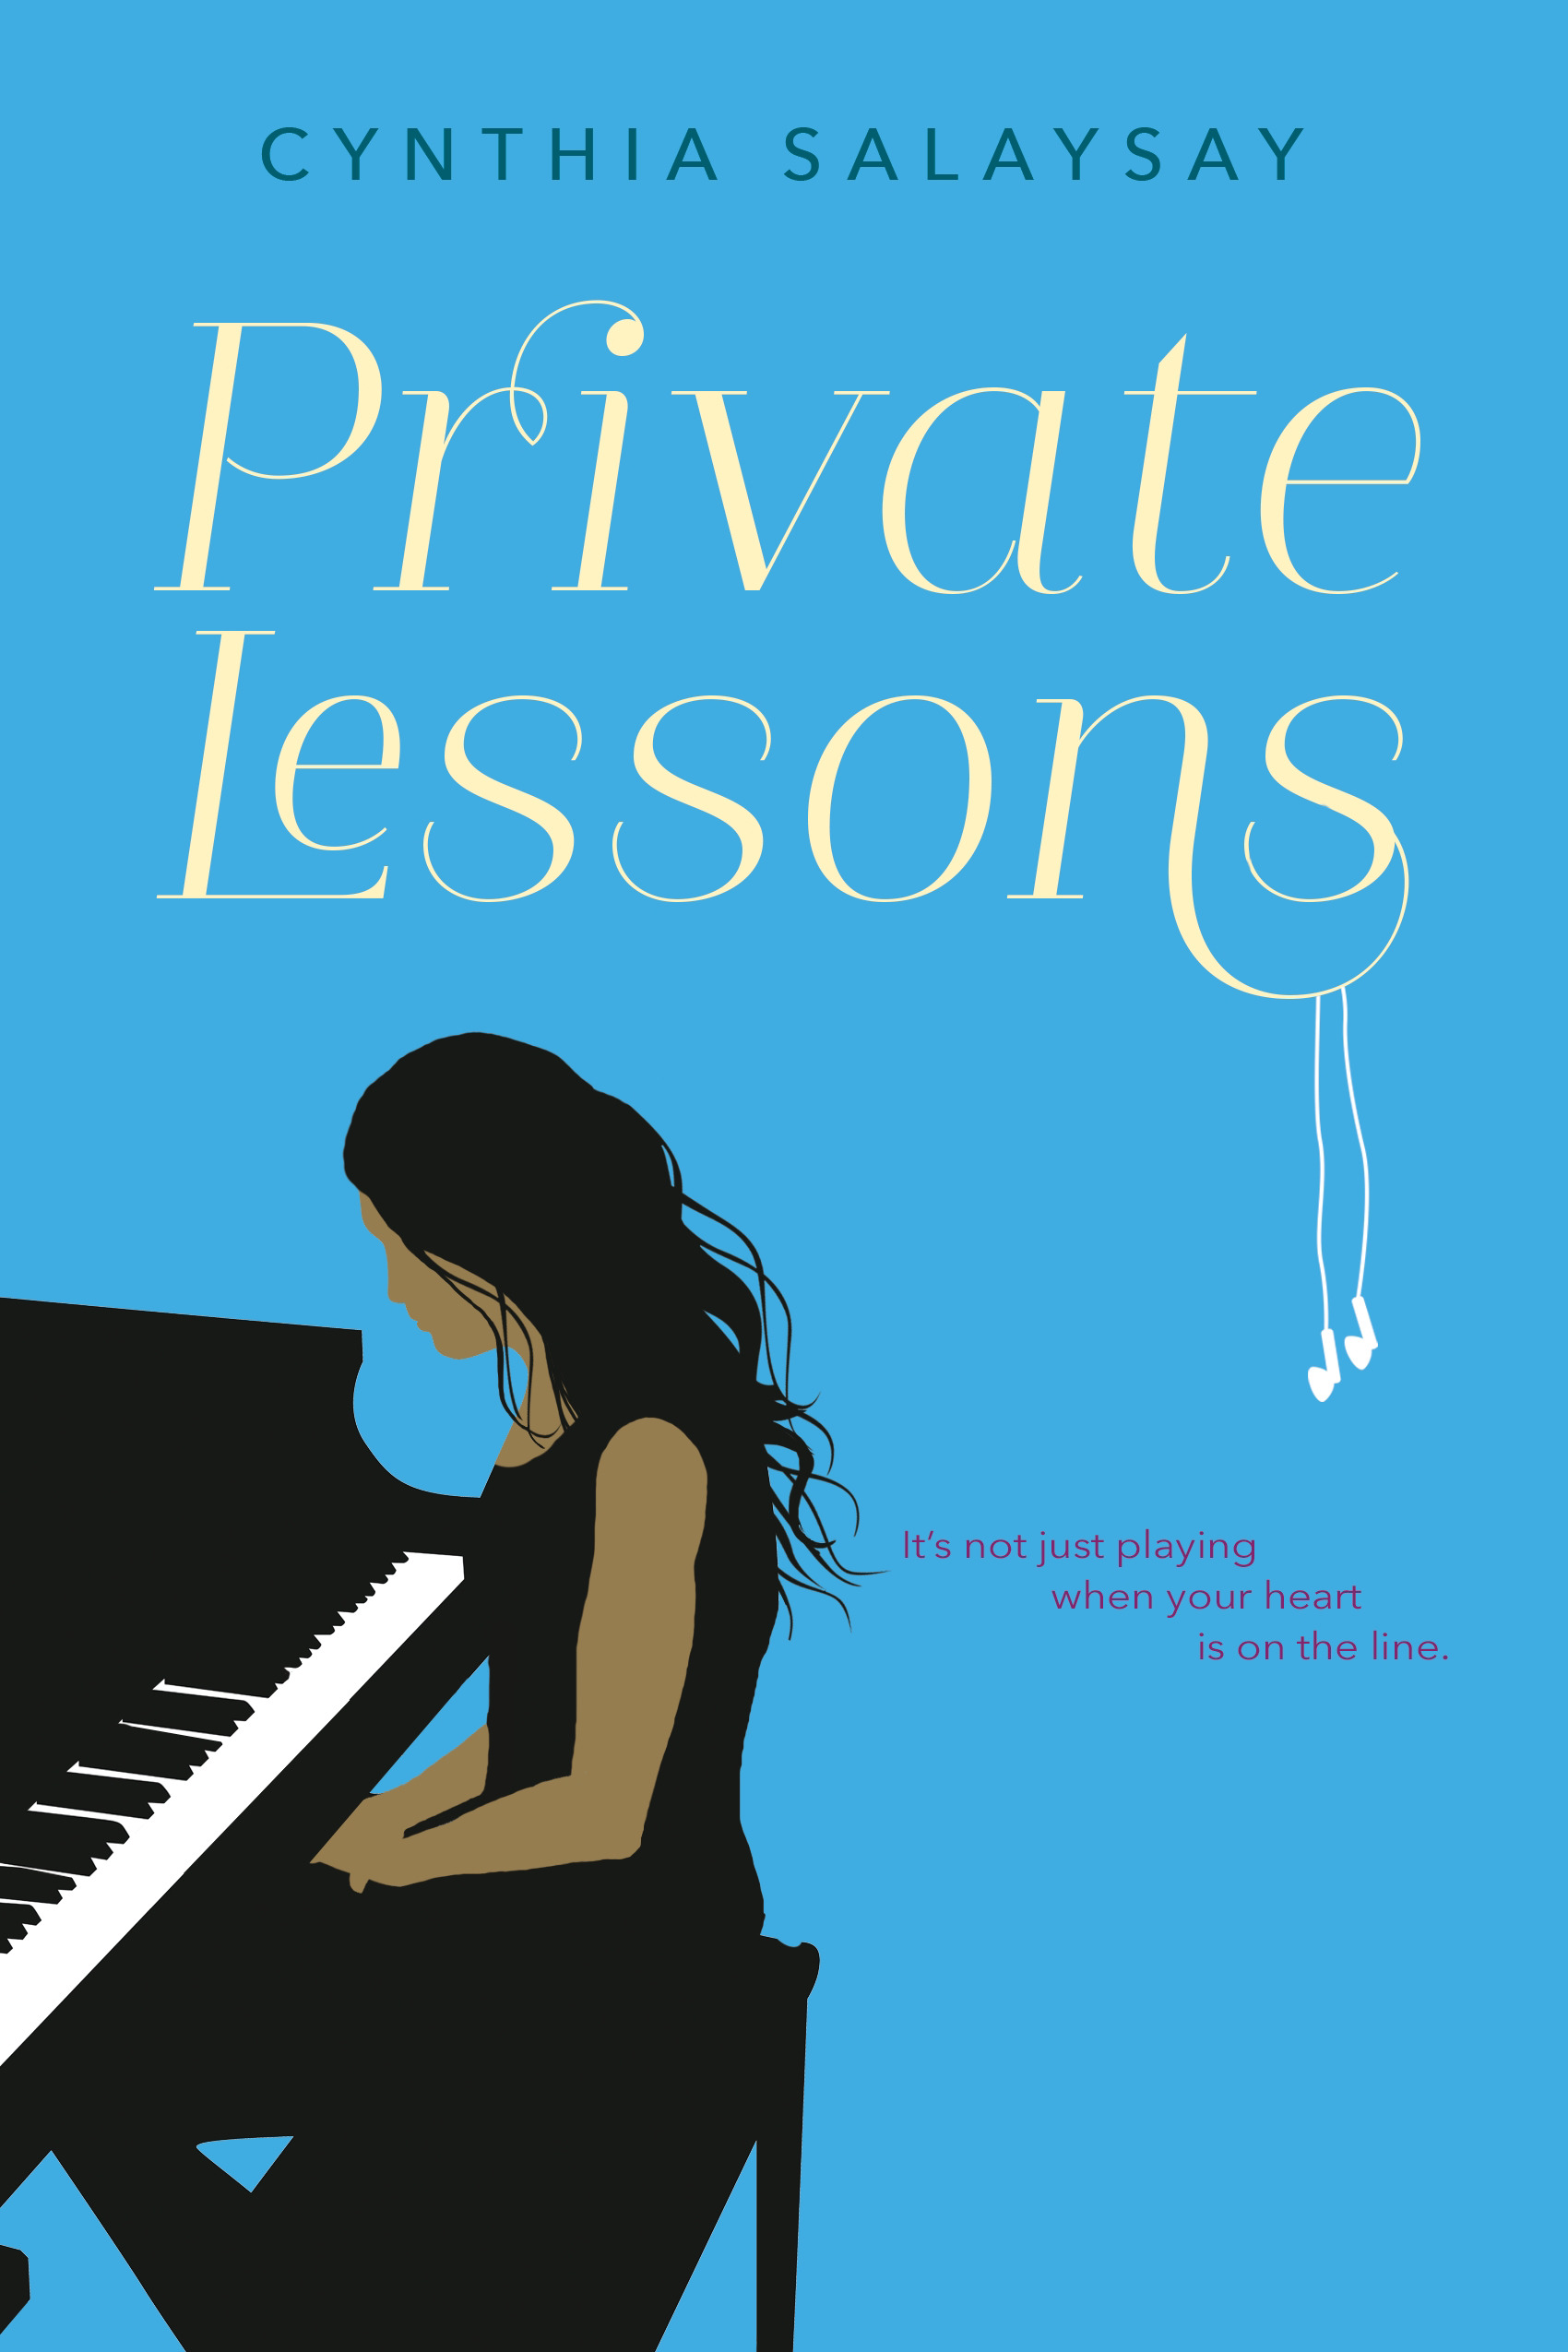 Private Lessons by Cynthia Salaysay (23 Books by Filipino Diaspora Authors For Your Shelf)